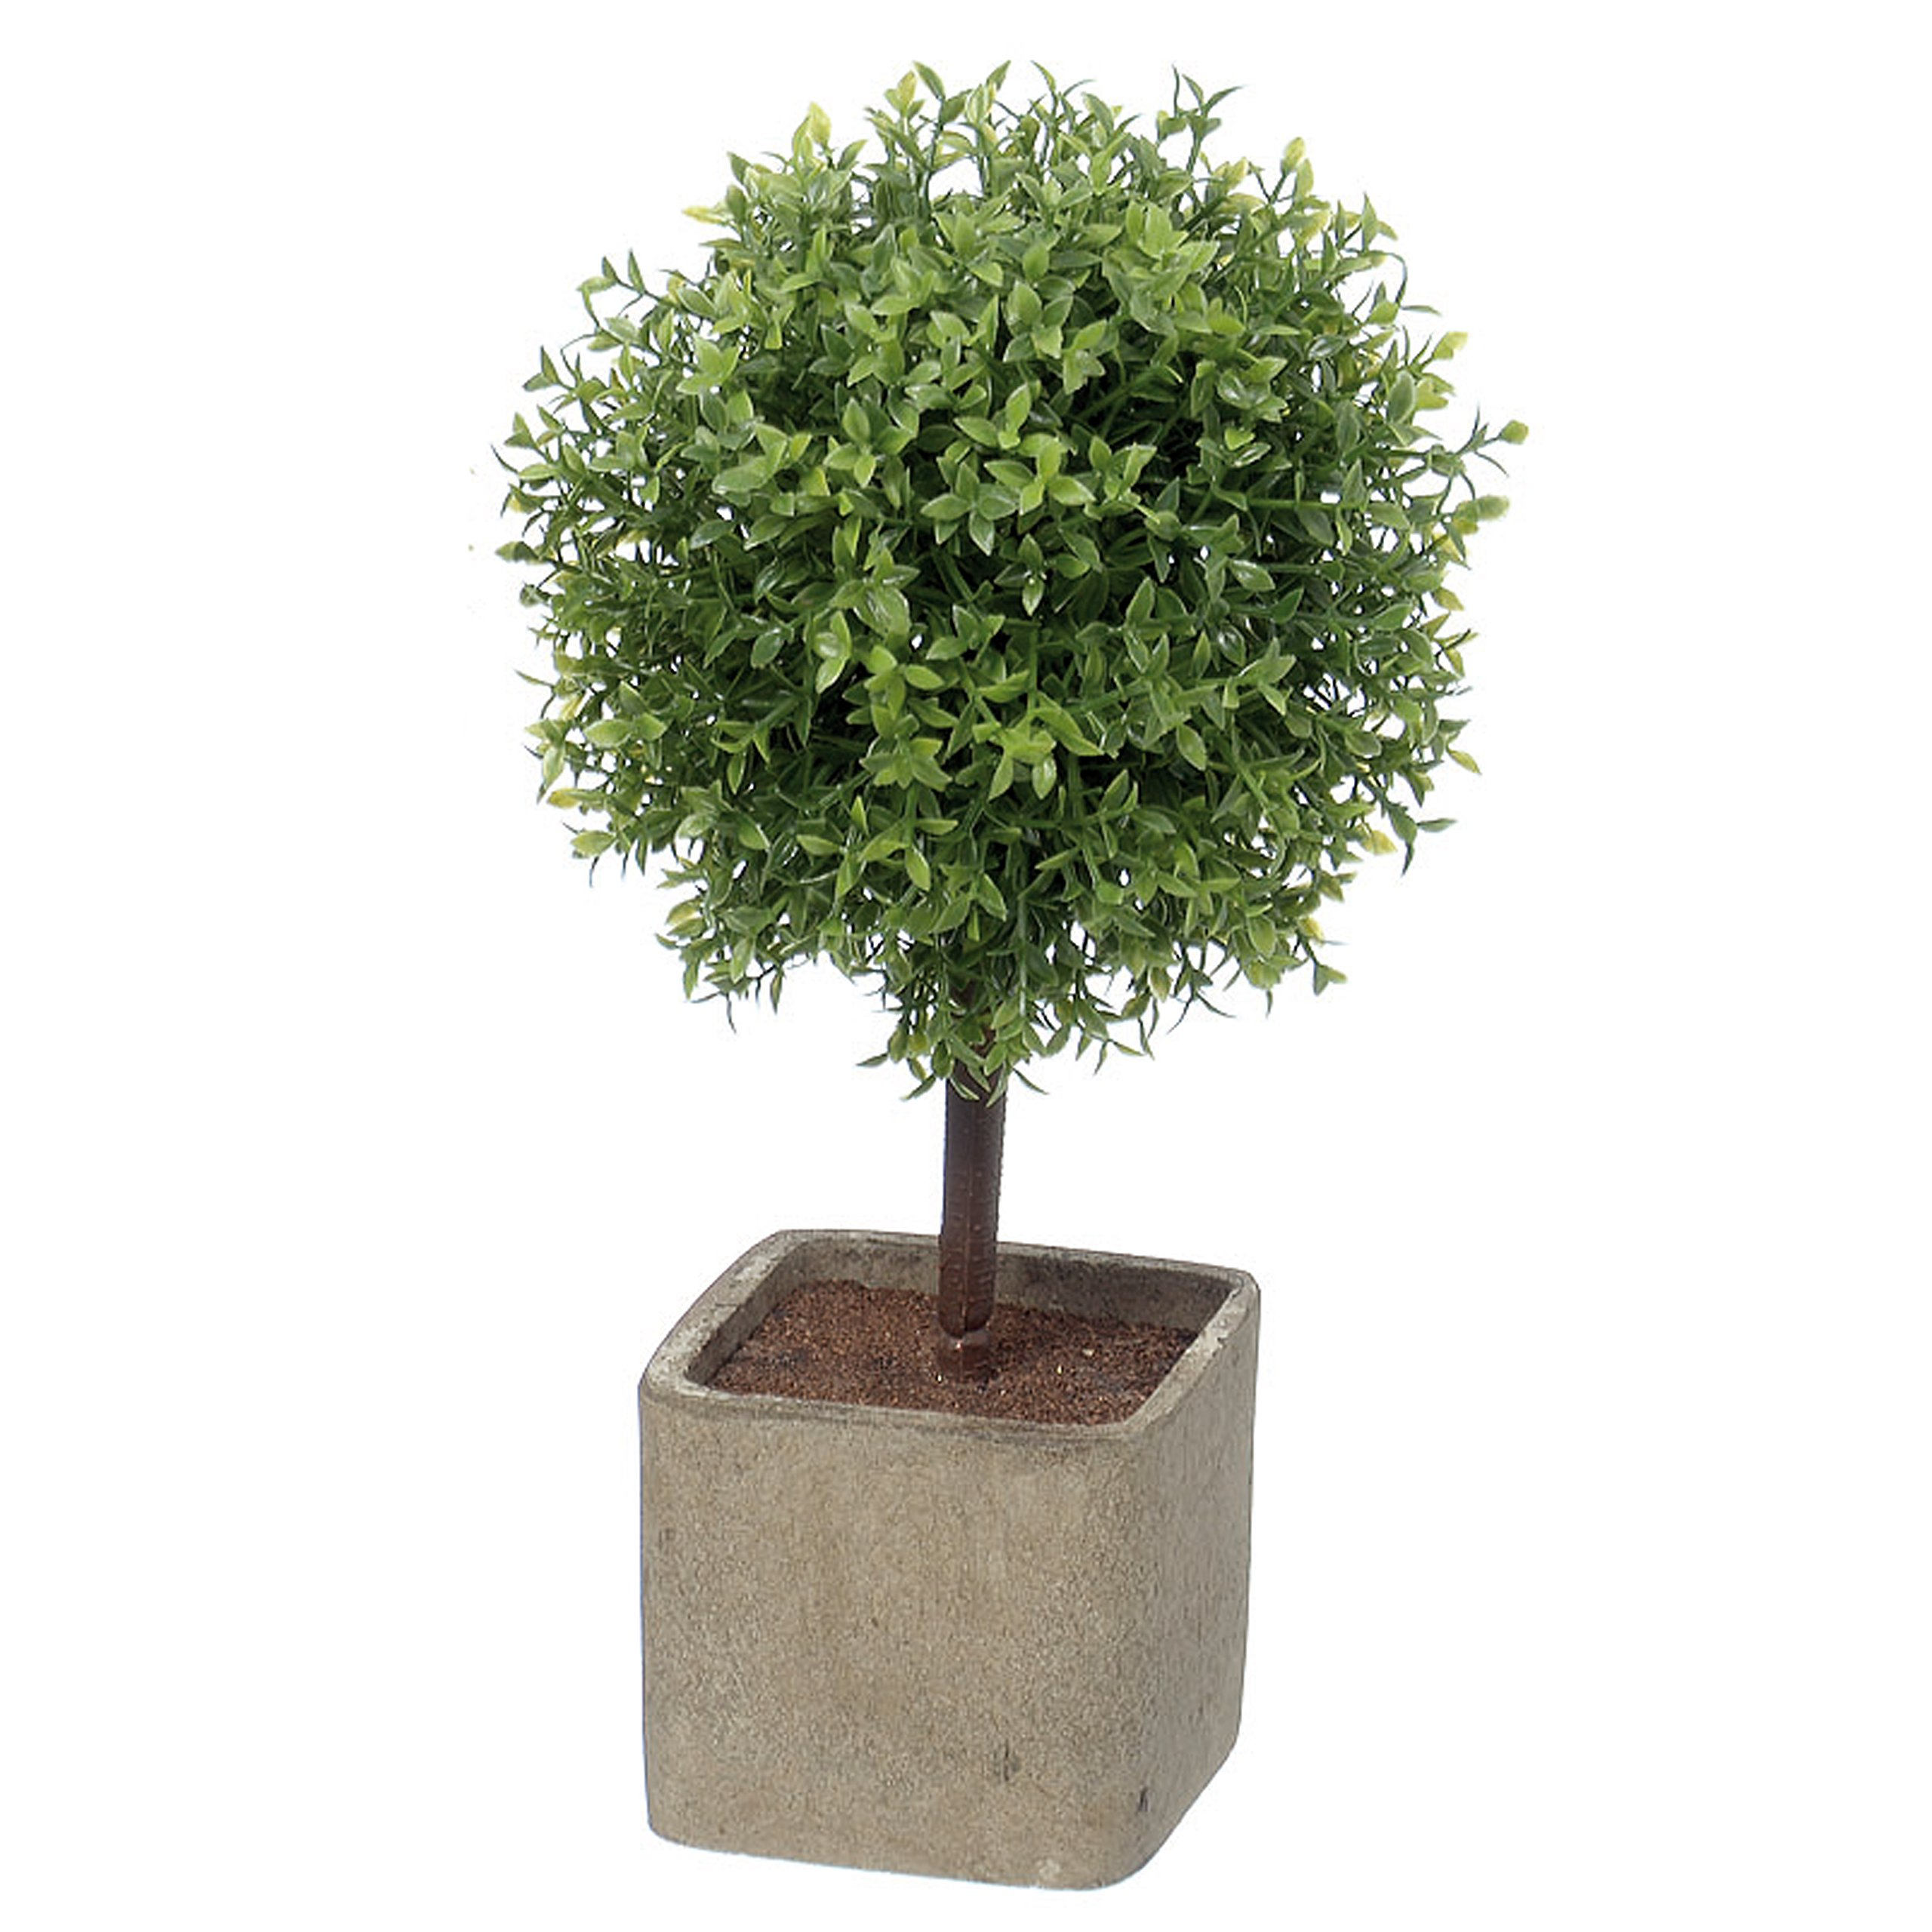 Whole House Worlds The Realistic Mini Faux Potted Boxwood Ball Topiary Tree, Gray Stone Finished Planter, 10 1/4 Inches Tall, By